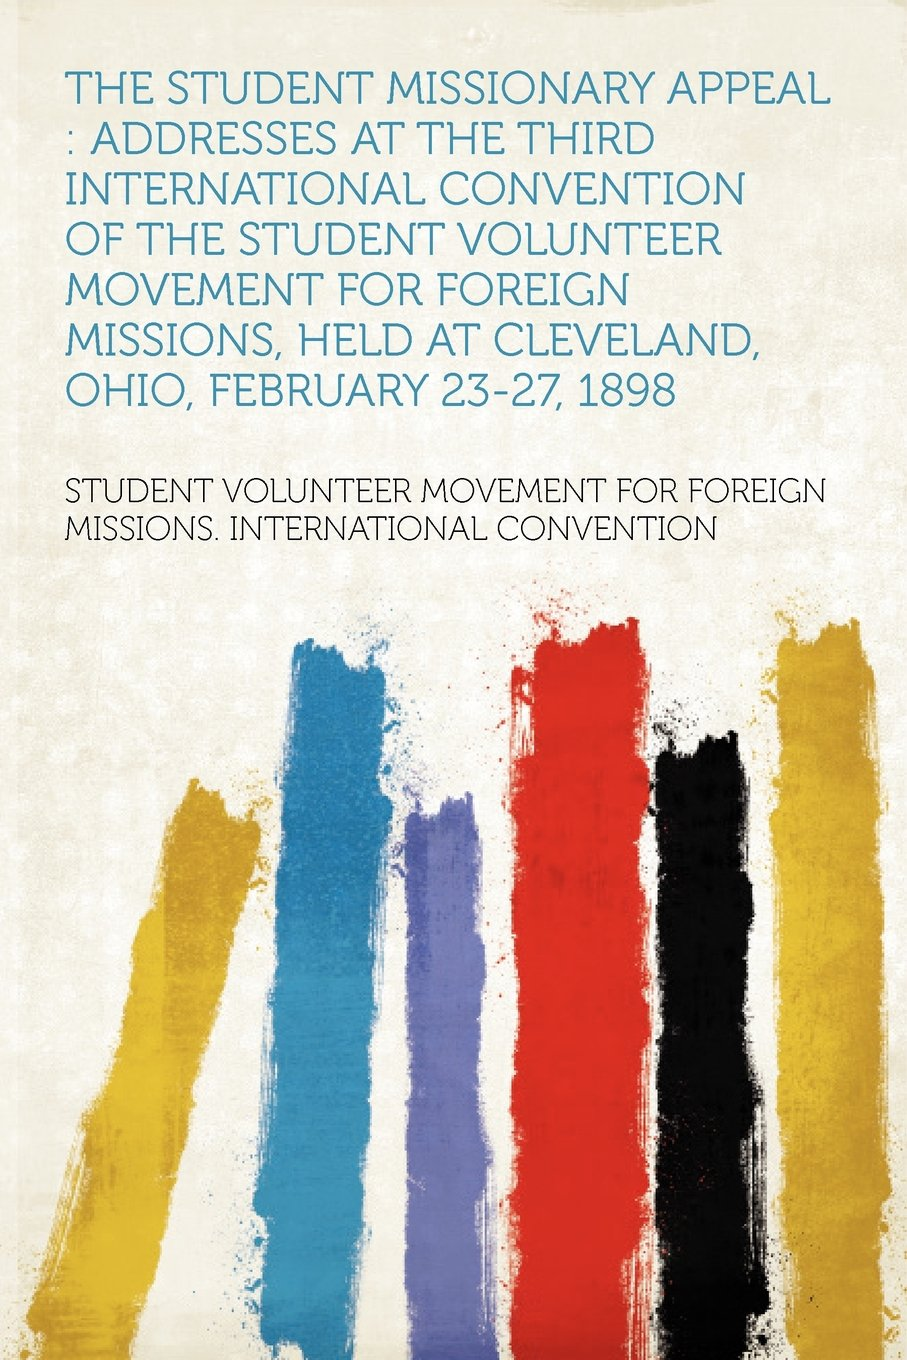 Download The Student Missionary Appeal: Addresses at the Third International Convention of the Student Volunteer Movement for Foreign Missions, Held at Cleveland, Ohio, February 23-27, 1898 pdf